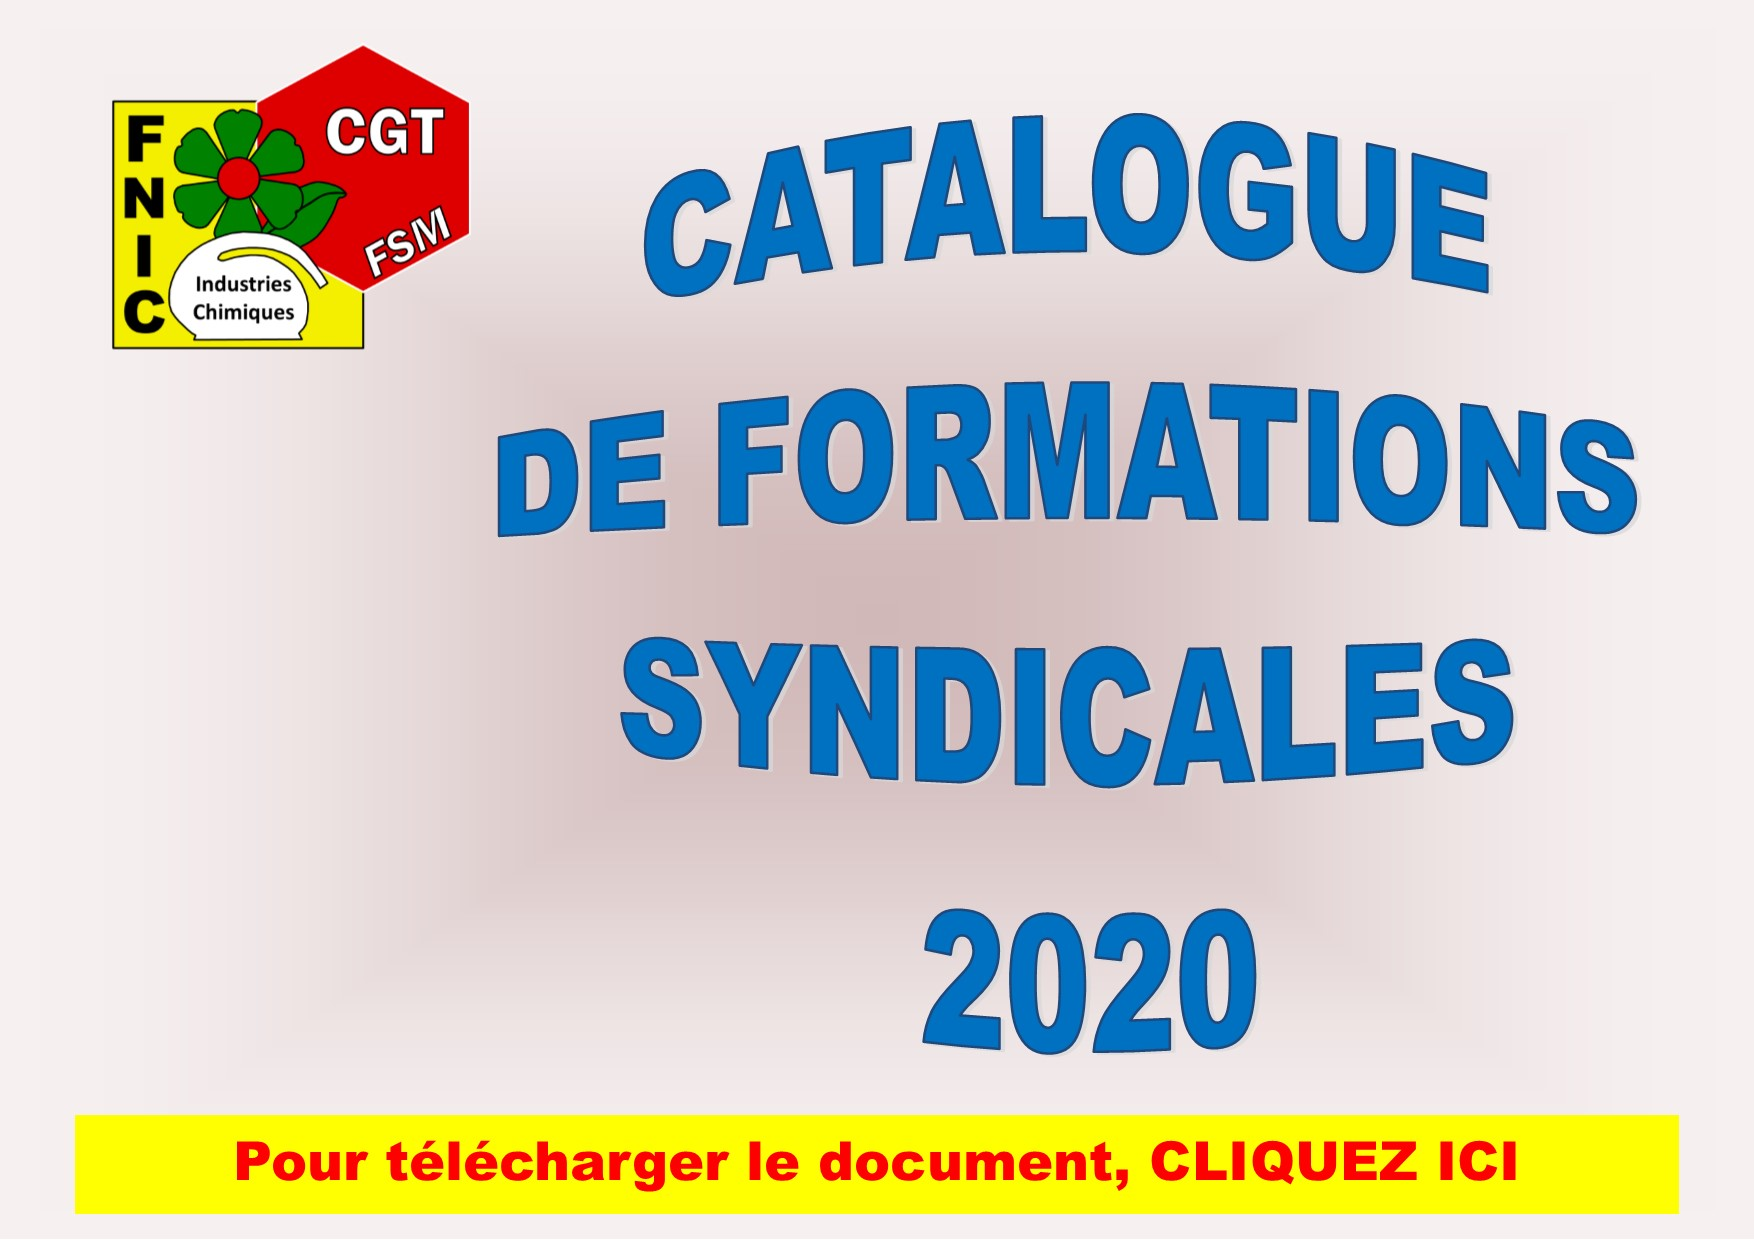 CATALOGUE DE FORMATION SYNDICALE 2020